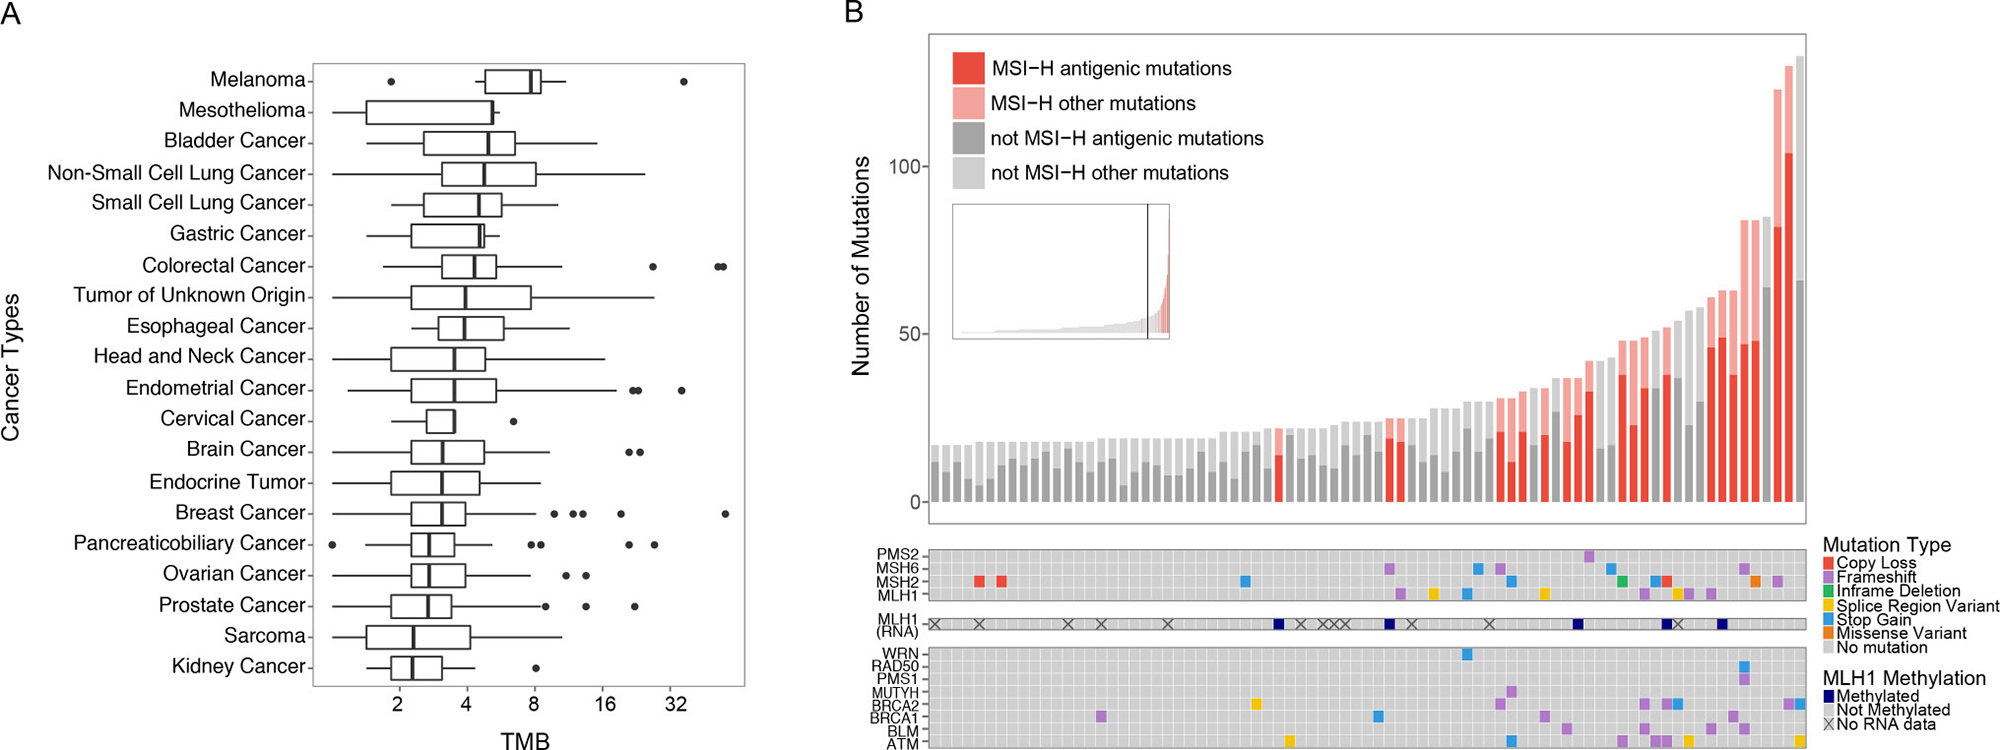 Survey of immunotherapy markers across diverse cancer types.